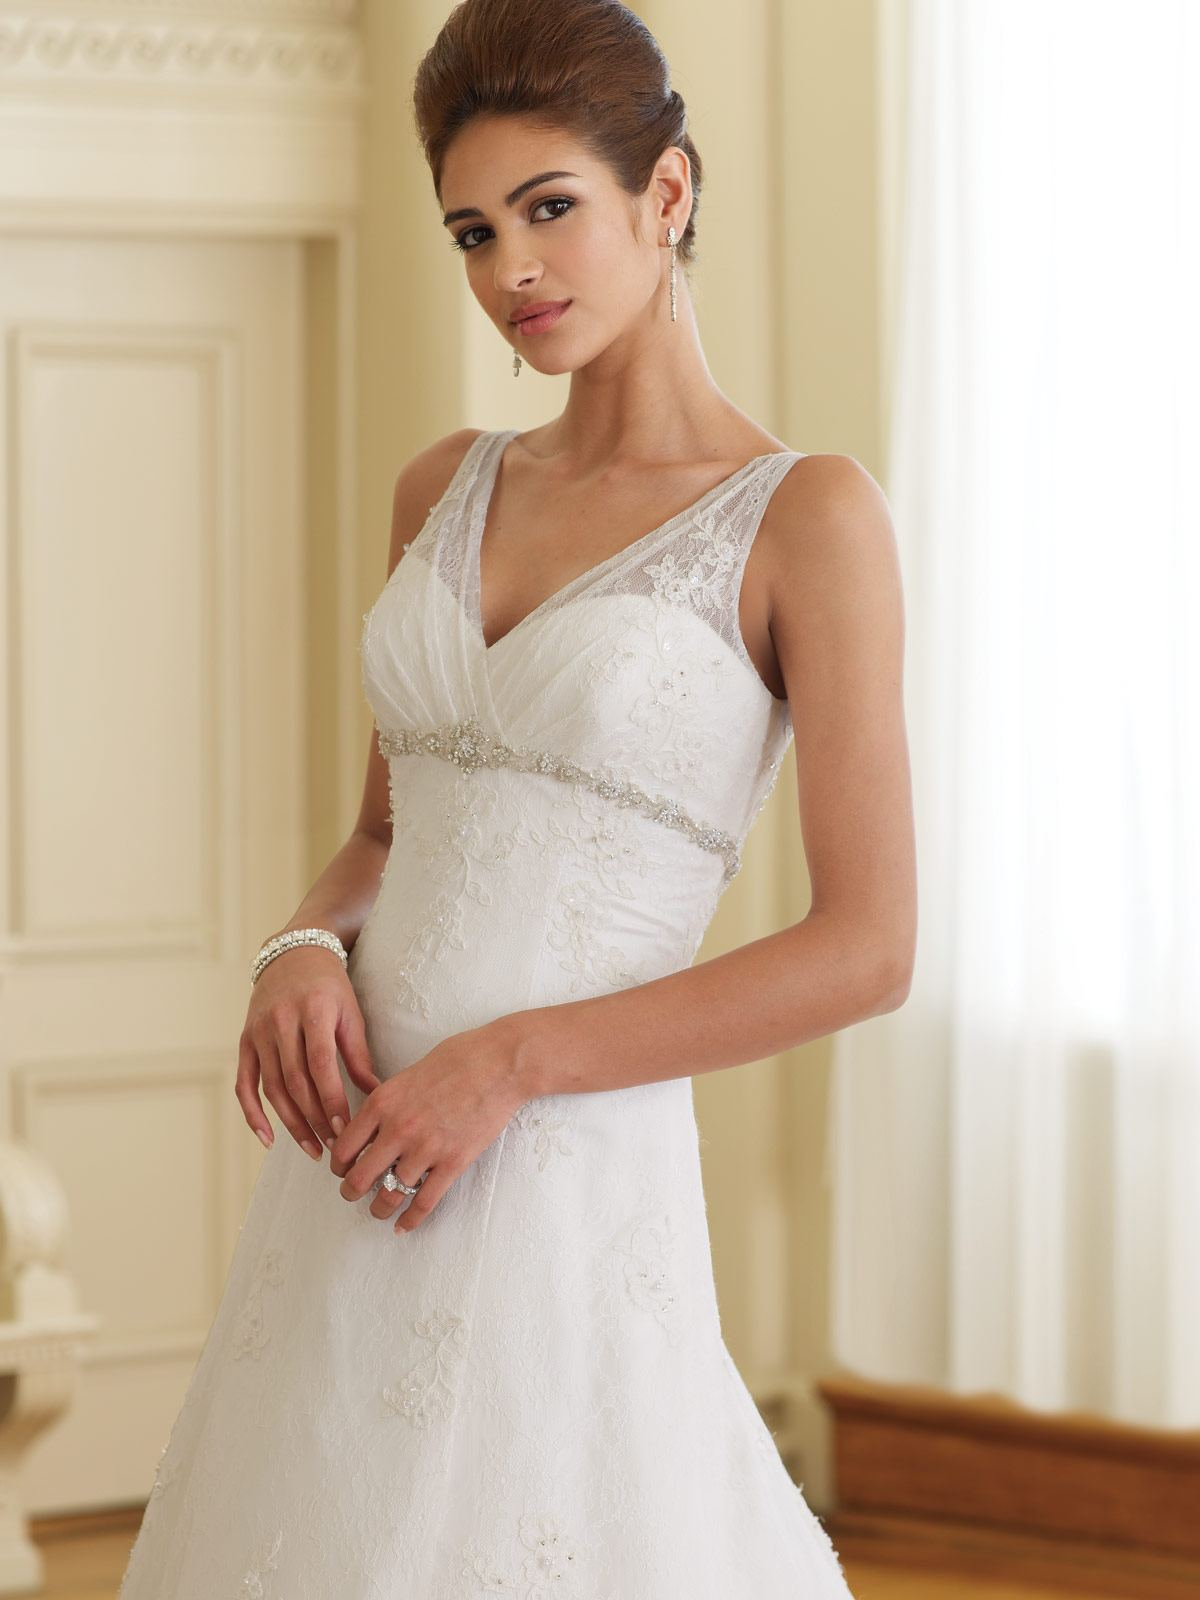 I Am A Woman In Love Beauty Style Wedding Dresses For Short Women